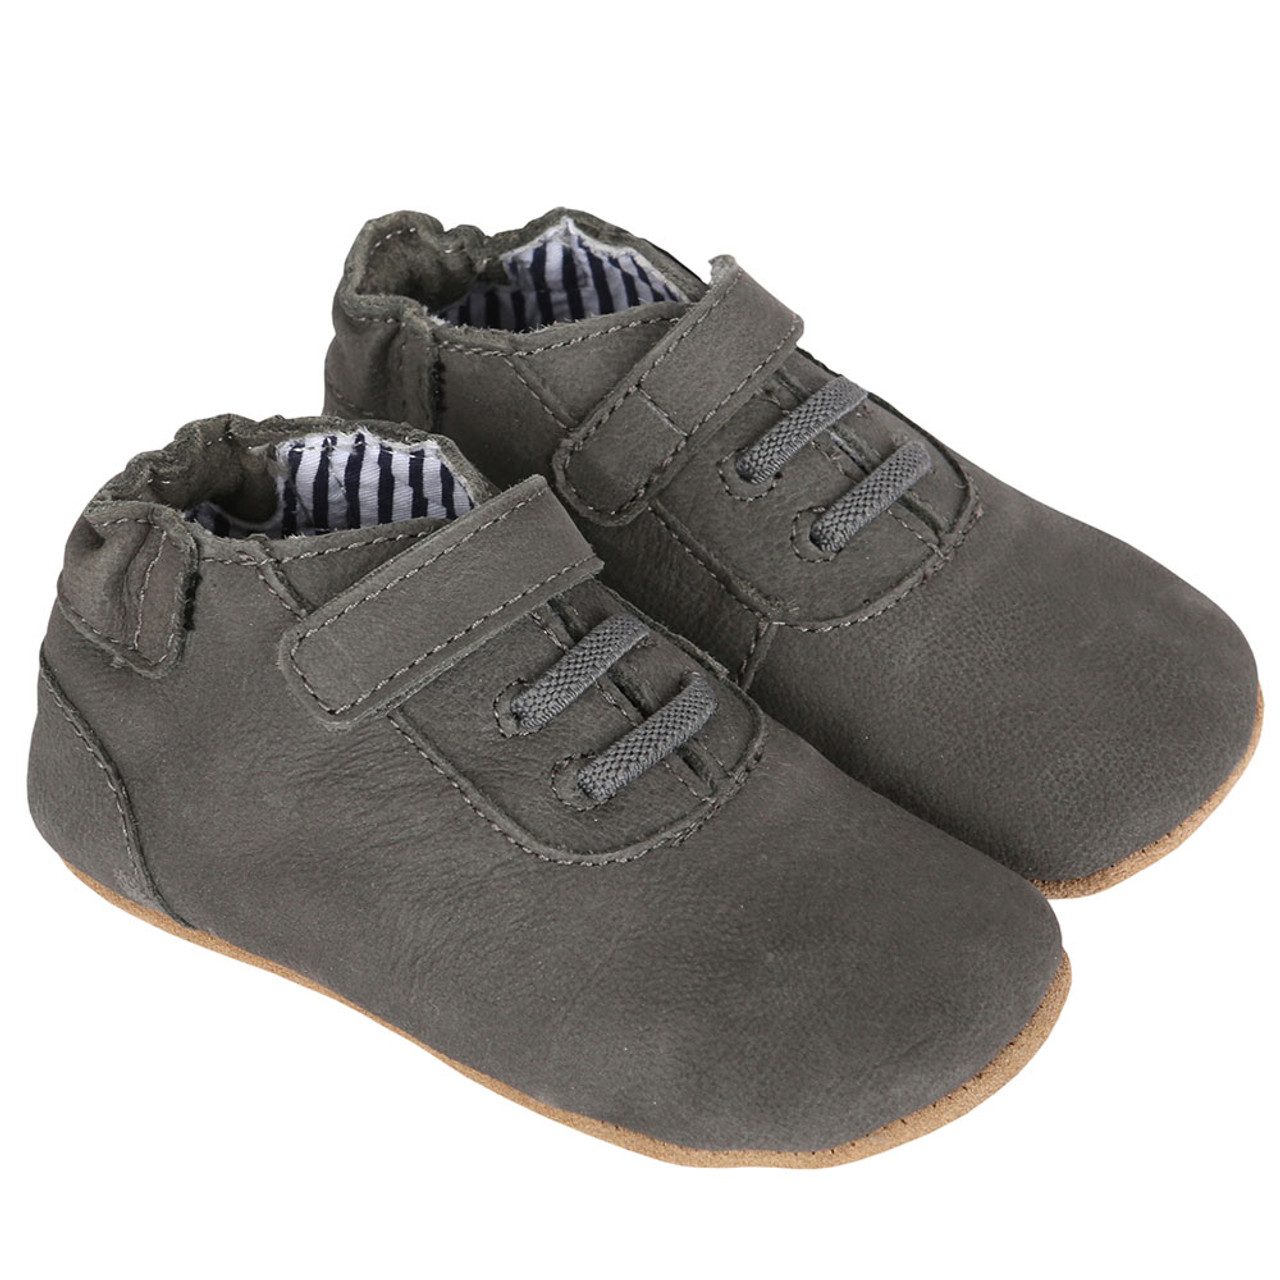 89c43685ac3e ... Robeez George First Kicks. Boys baby shoes in grey leather with faux  laces. First Kicks have soft soles but